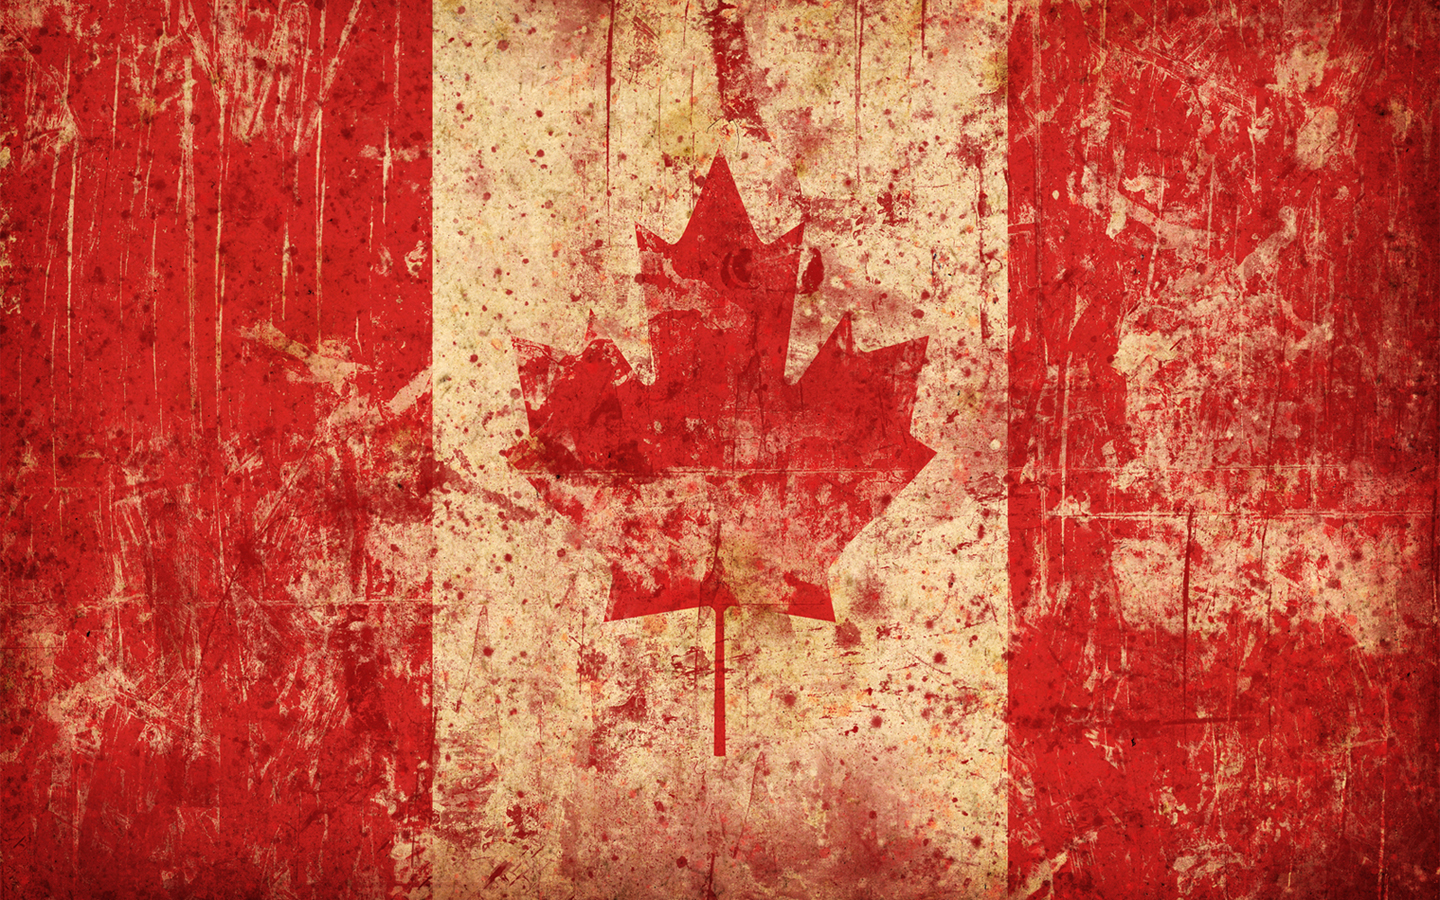 Wallpaper 1440x900 Grunge Canada Flags Maple Leaf Canadian Flag 1440x900